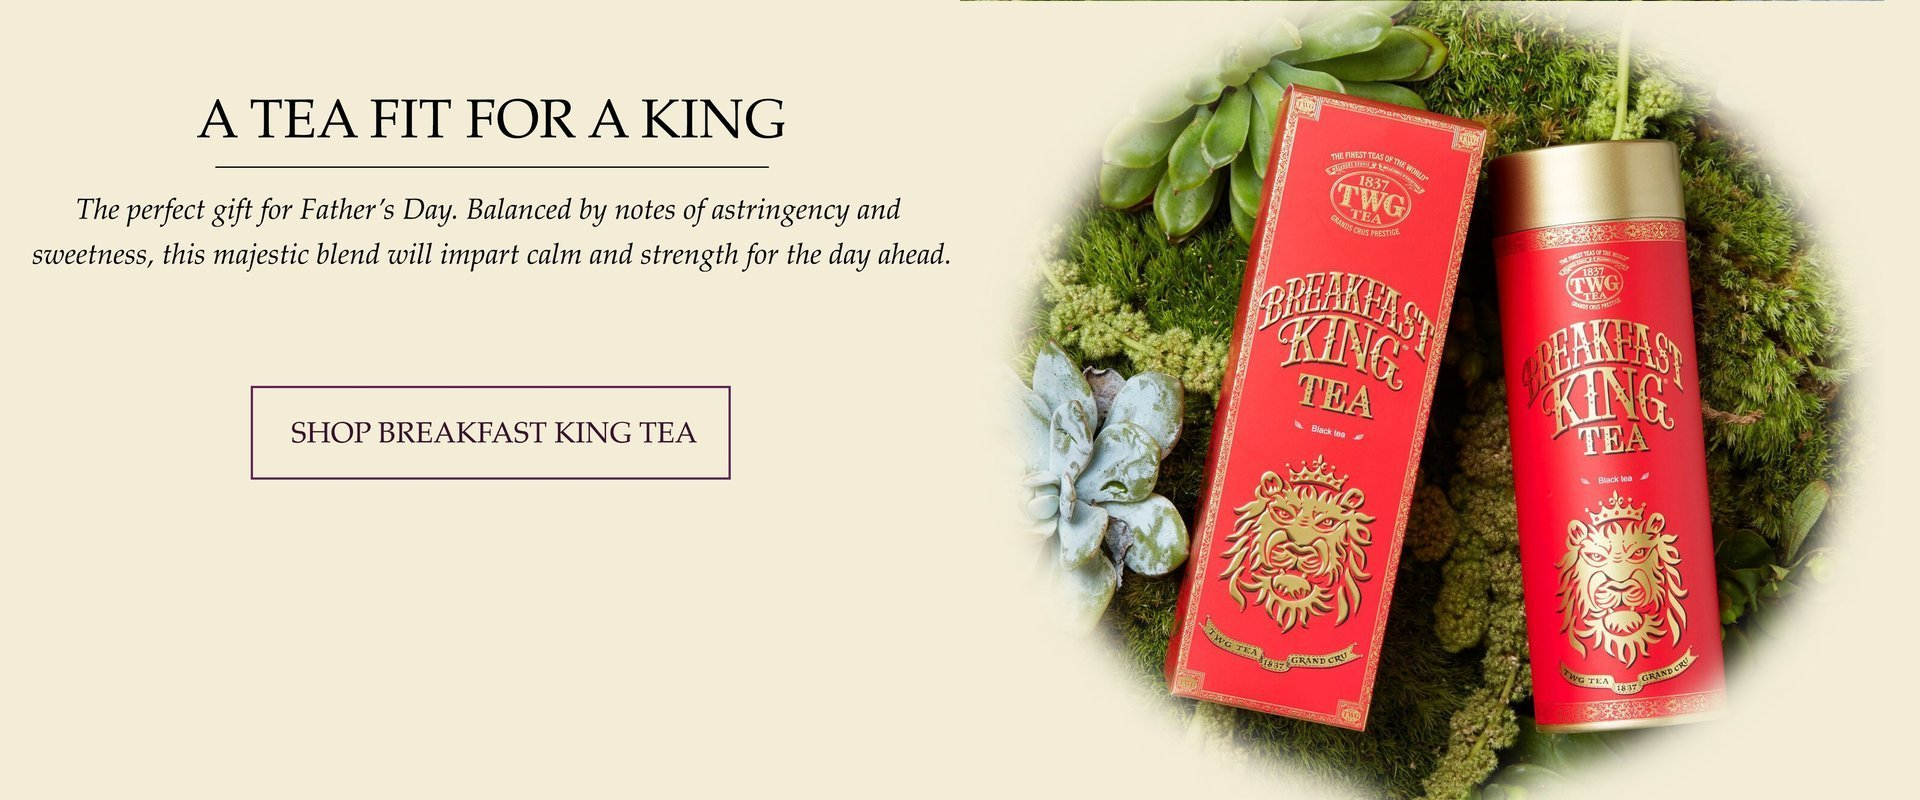 Shop TWG Tea Always Sakura Tea - spring green tea